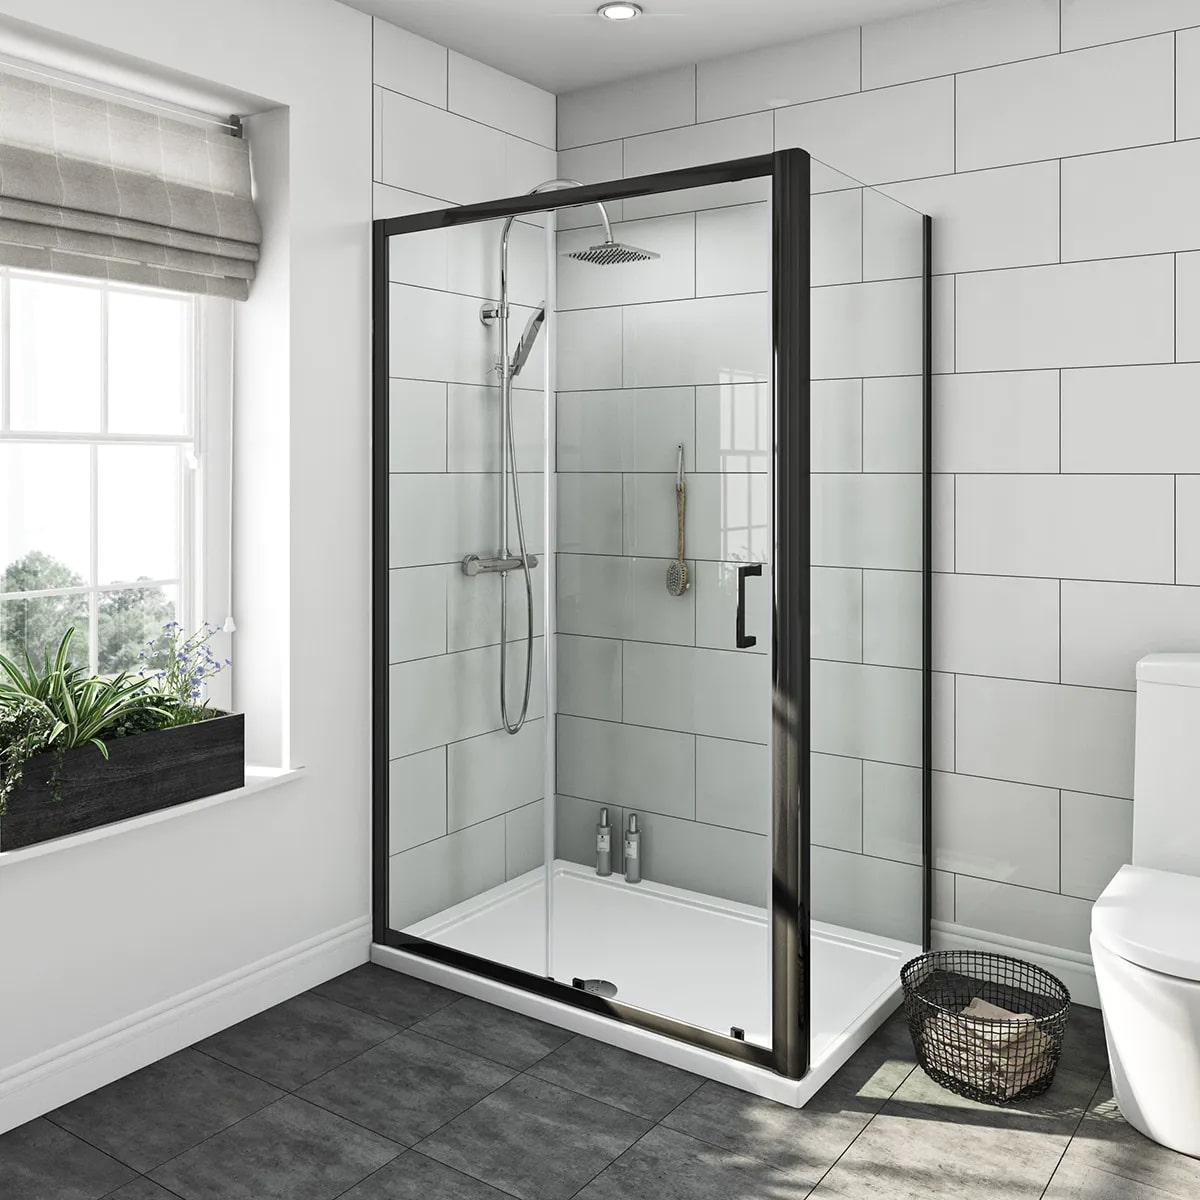 custom-shower-doors-glass-shower-door-repair